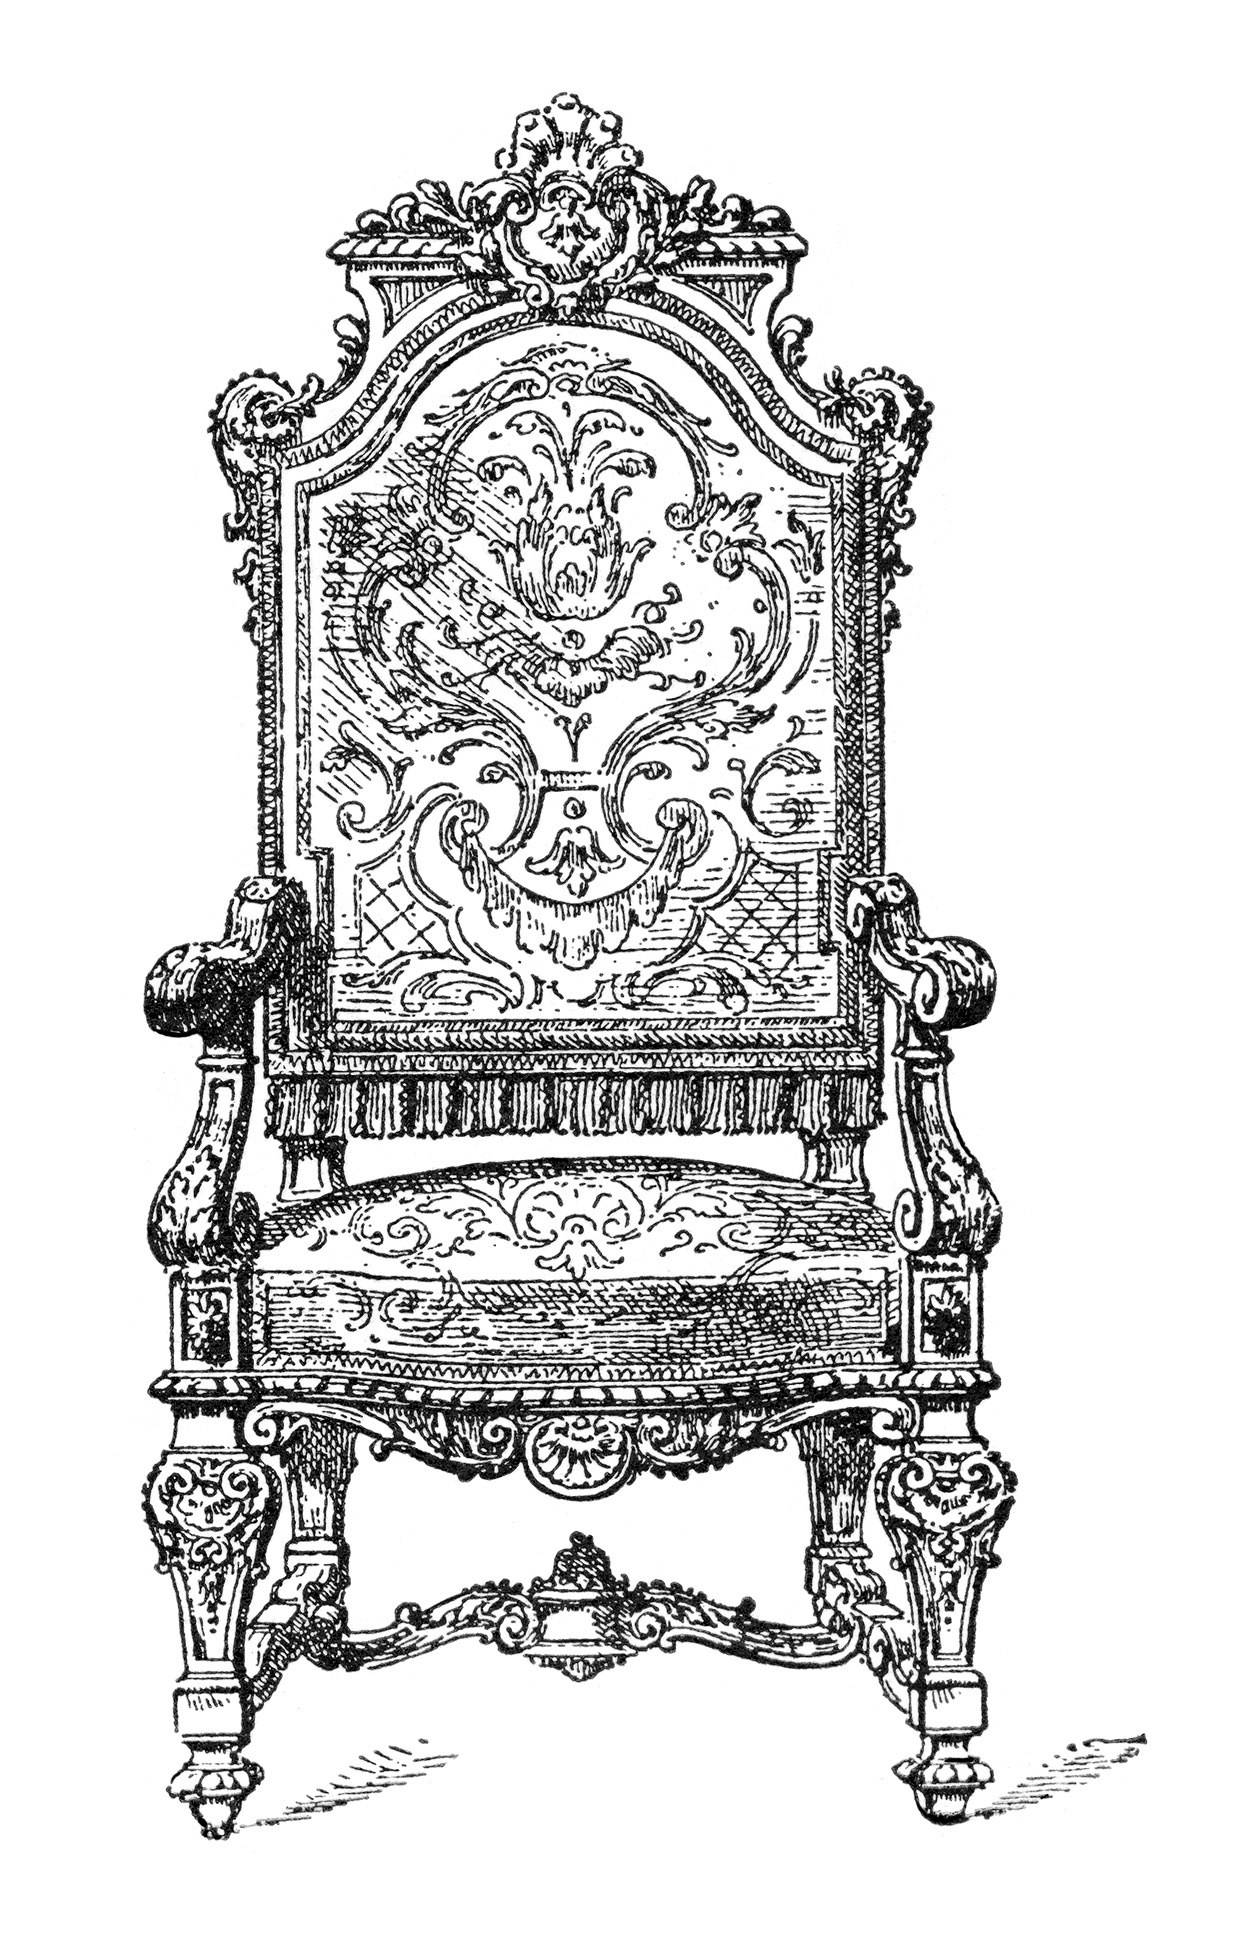 Free Vintage Image Ornate Chair Clip Art Ornate Chairs Clip Art Vintage Vintage Images